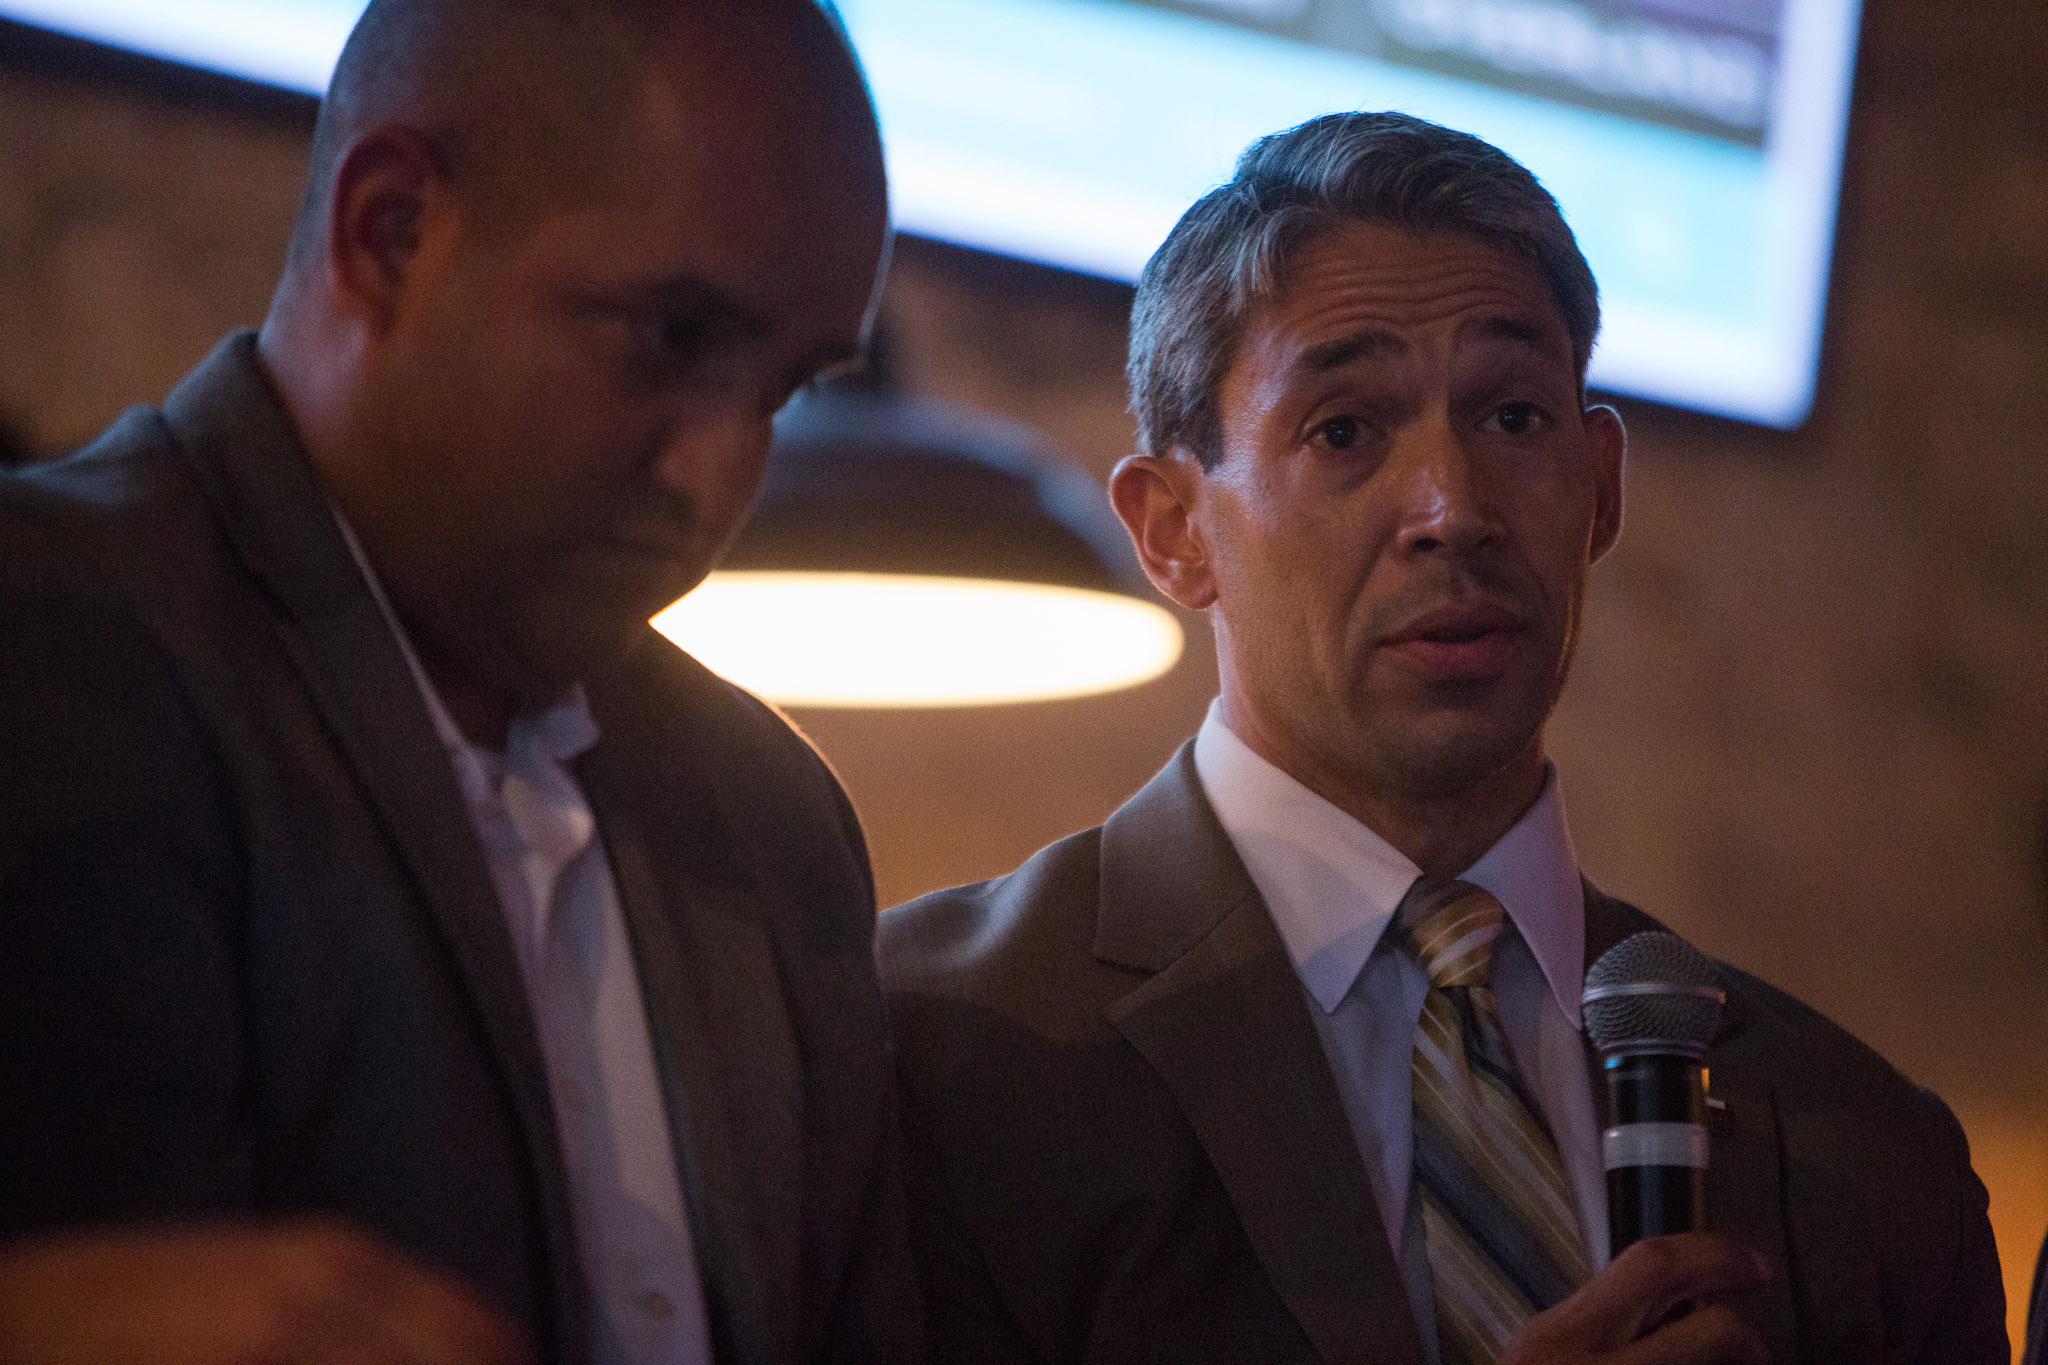 Councilman Ron Nirenberg D8 speaks to the topic of annexation. Photo by Scott Ball.